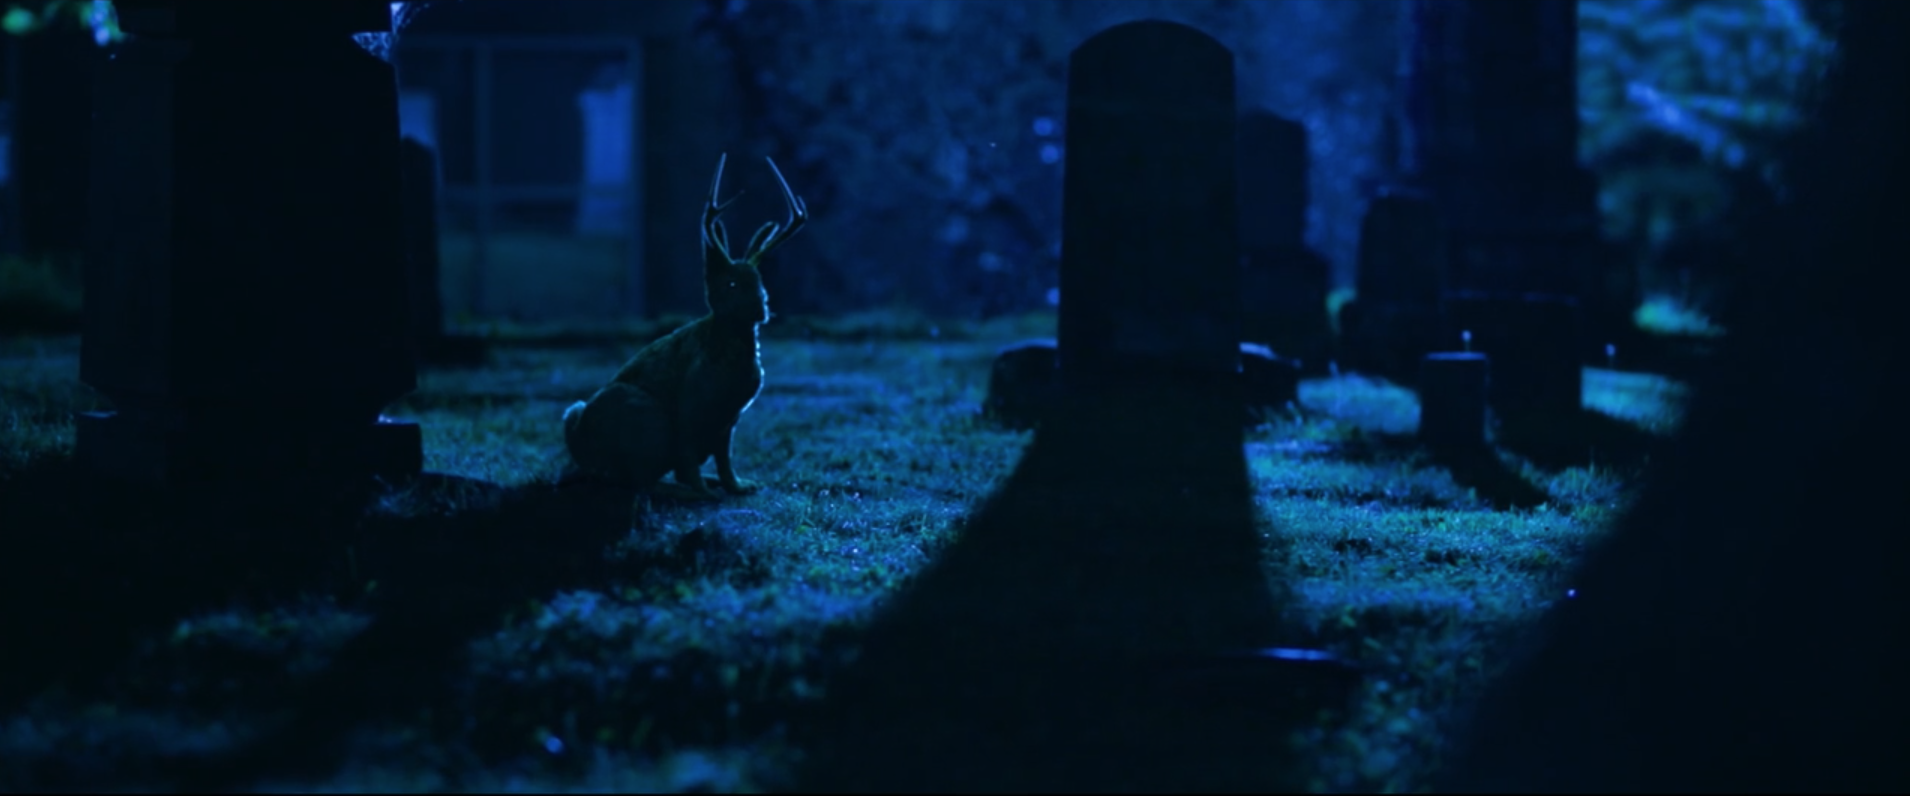 """Looking for the Jackalope - """"The Jackalope"""", featuring the voice of actor Stephen Root"""